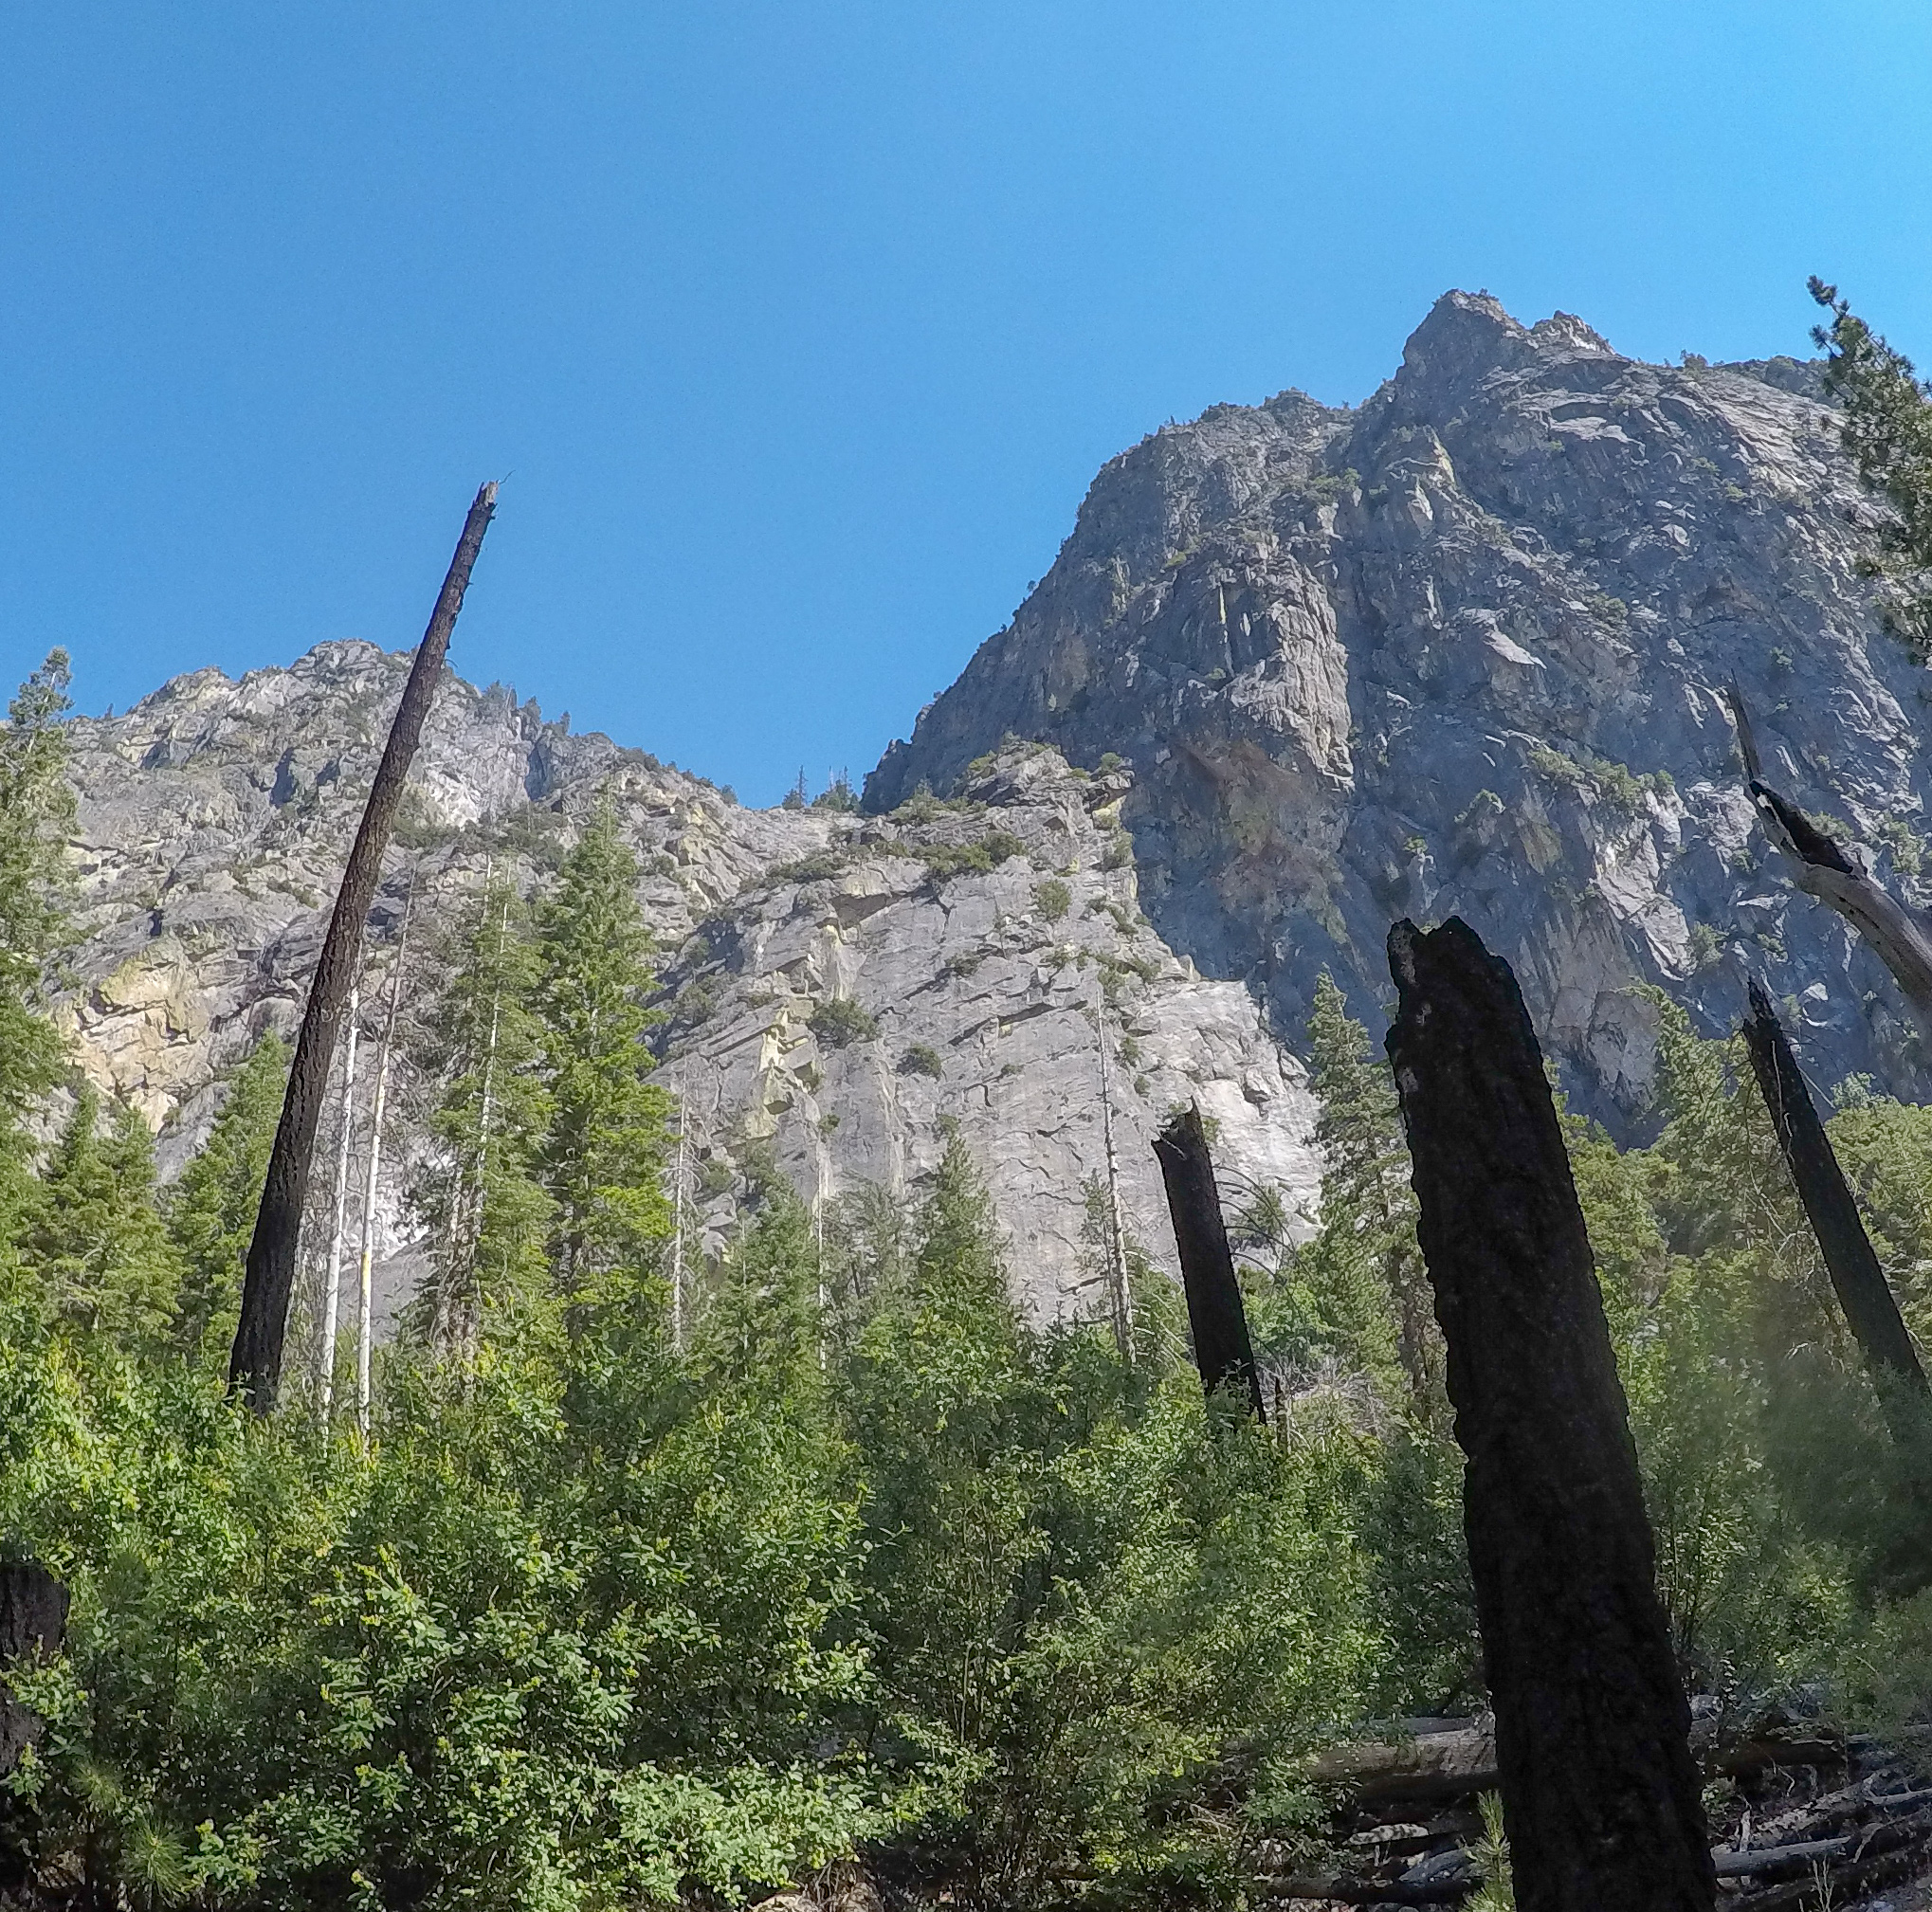 View of the climb from the trailhead